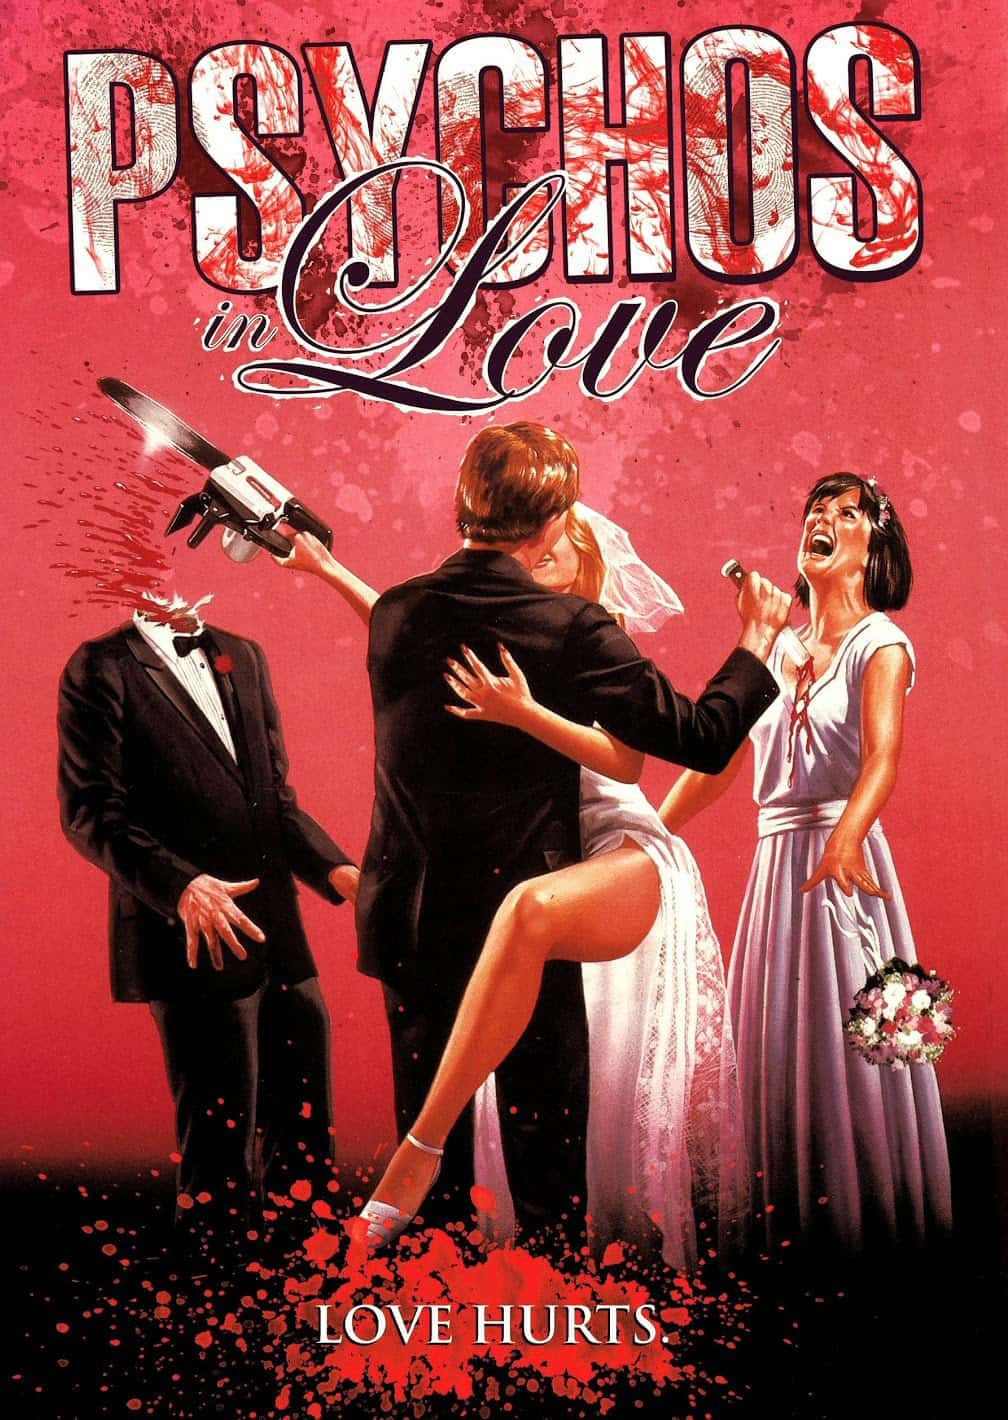 Psychos in Love, Vinegar Syndrome film restoration